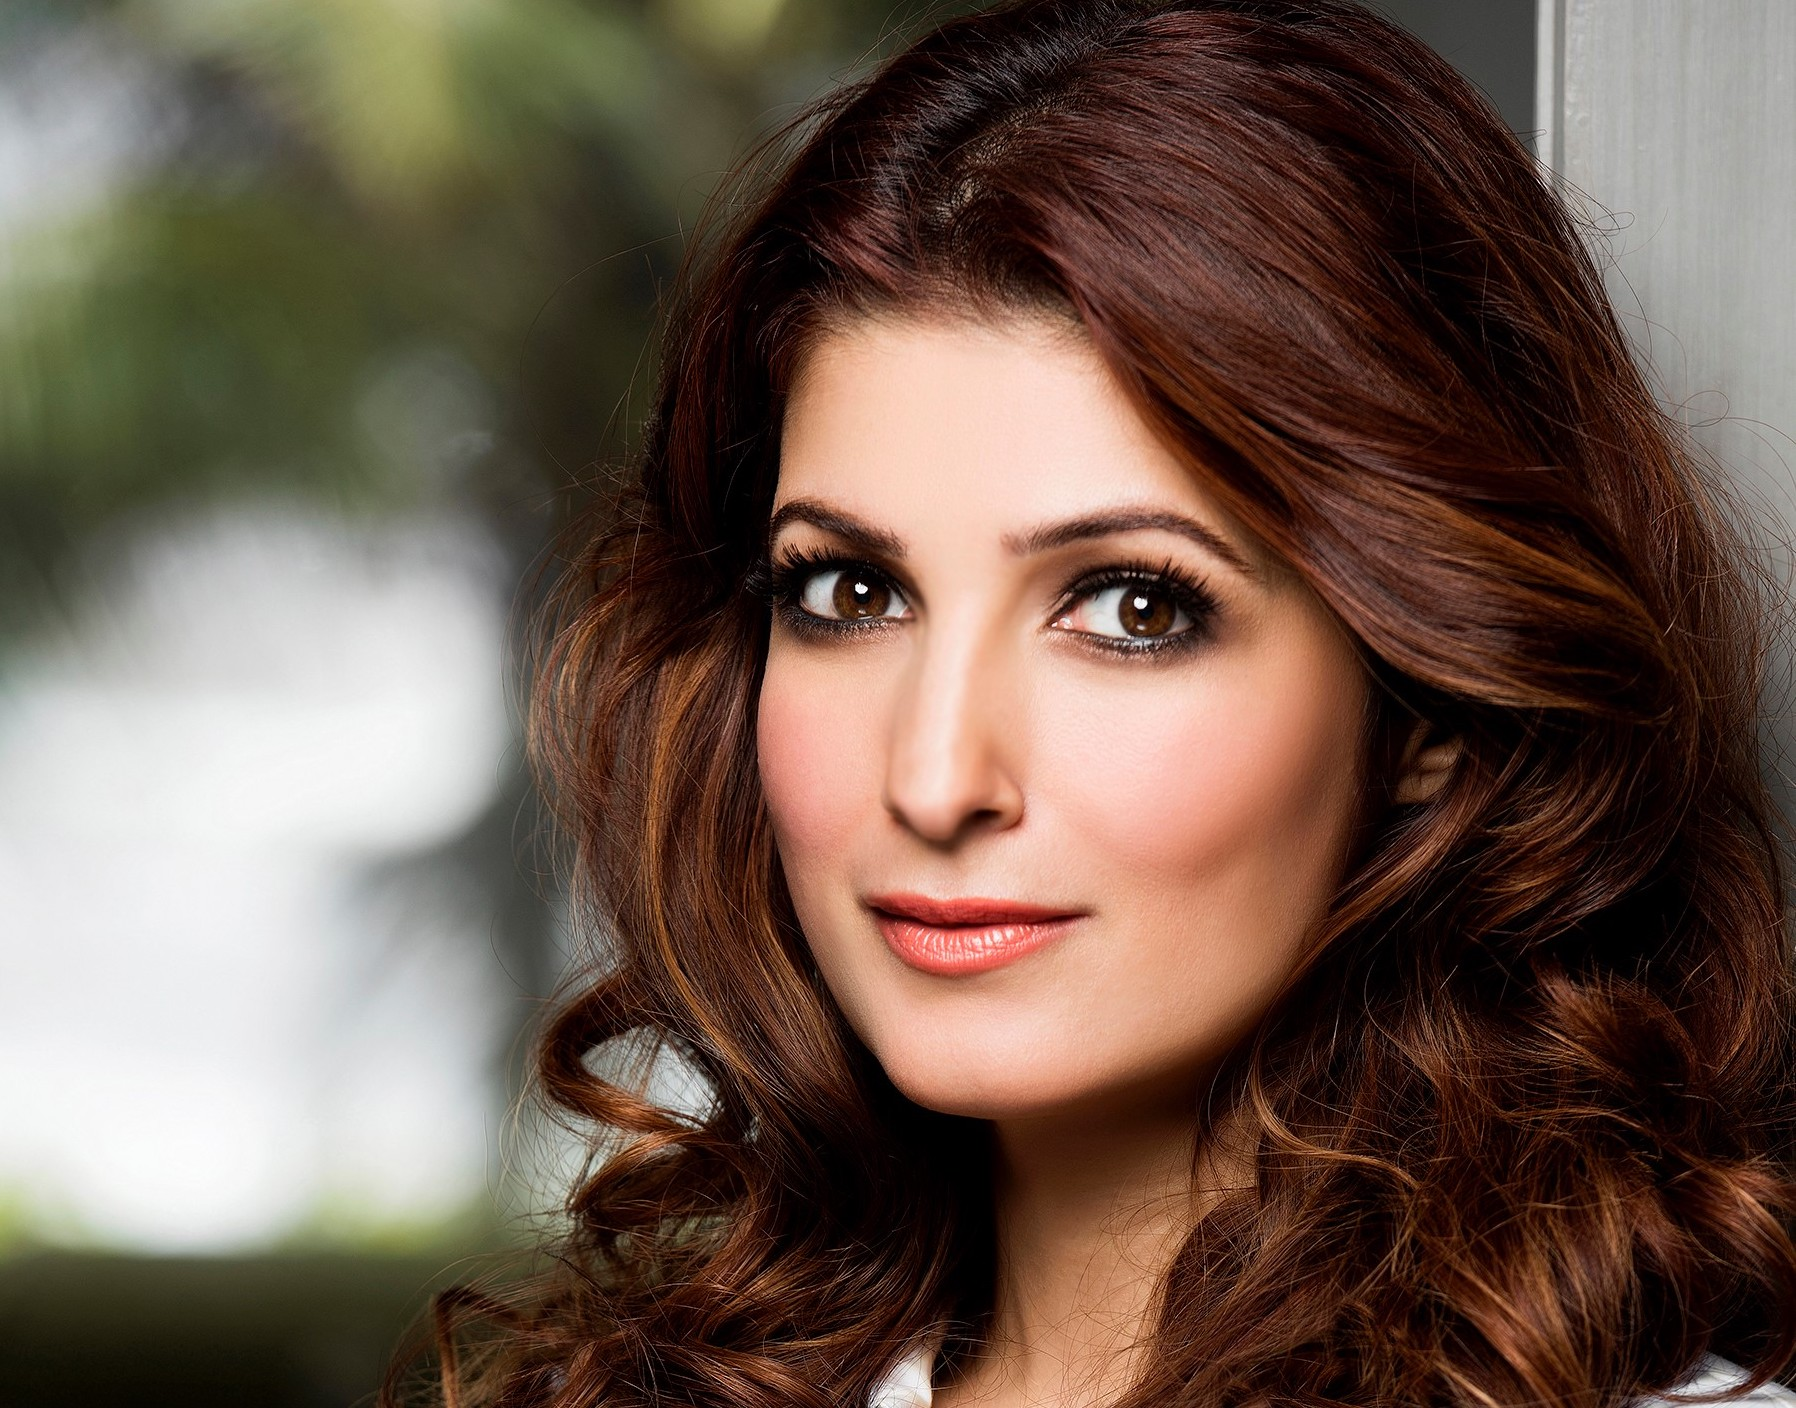 Interior Column Designs Twinkle Khanna I M Determined To Spread The Story And